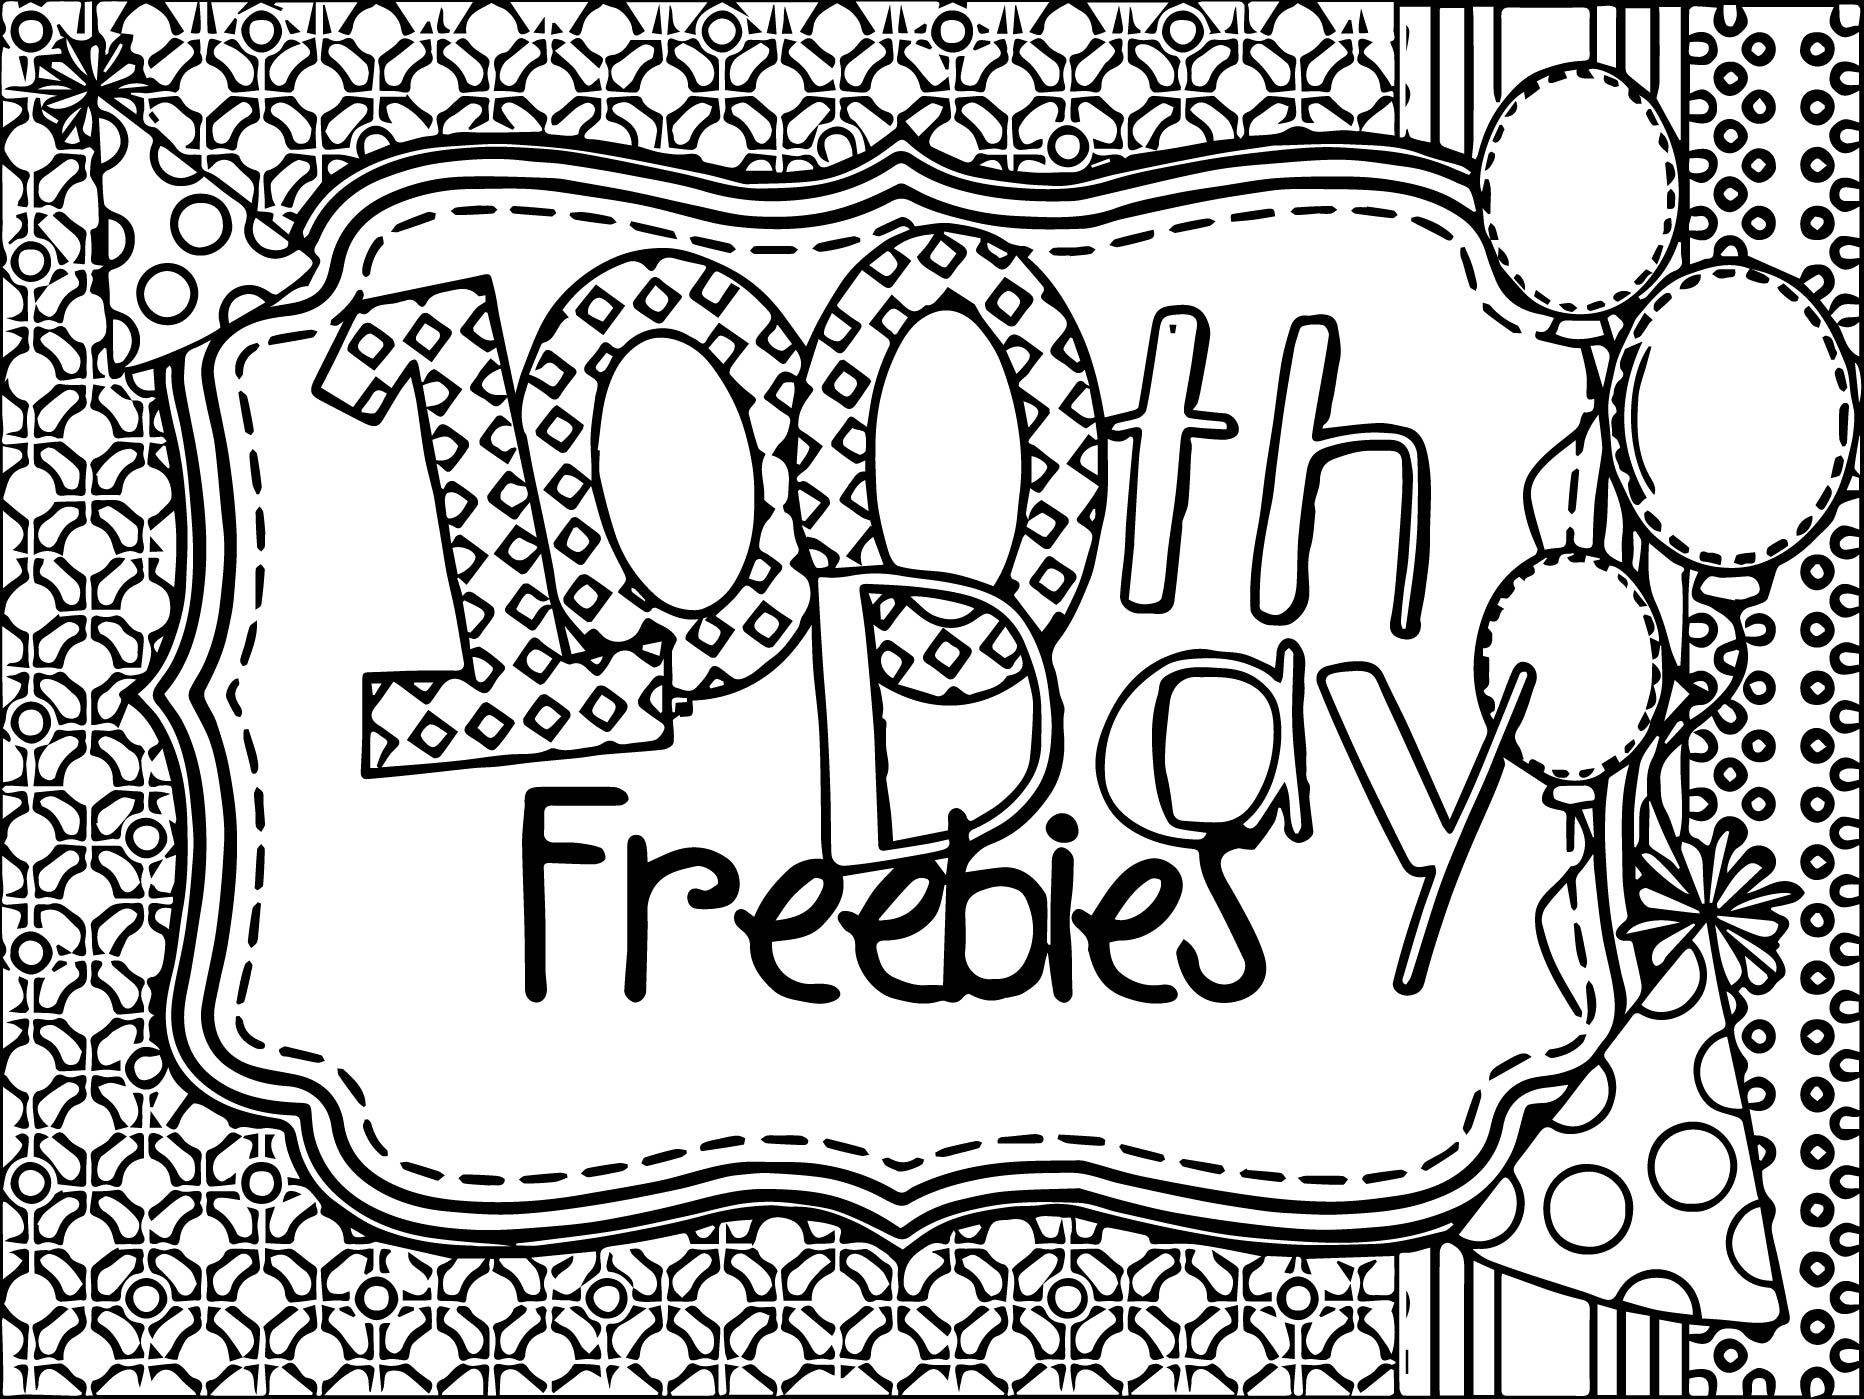 100 days of school coloring page - 100 days of school freebies coloring page